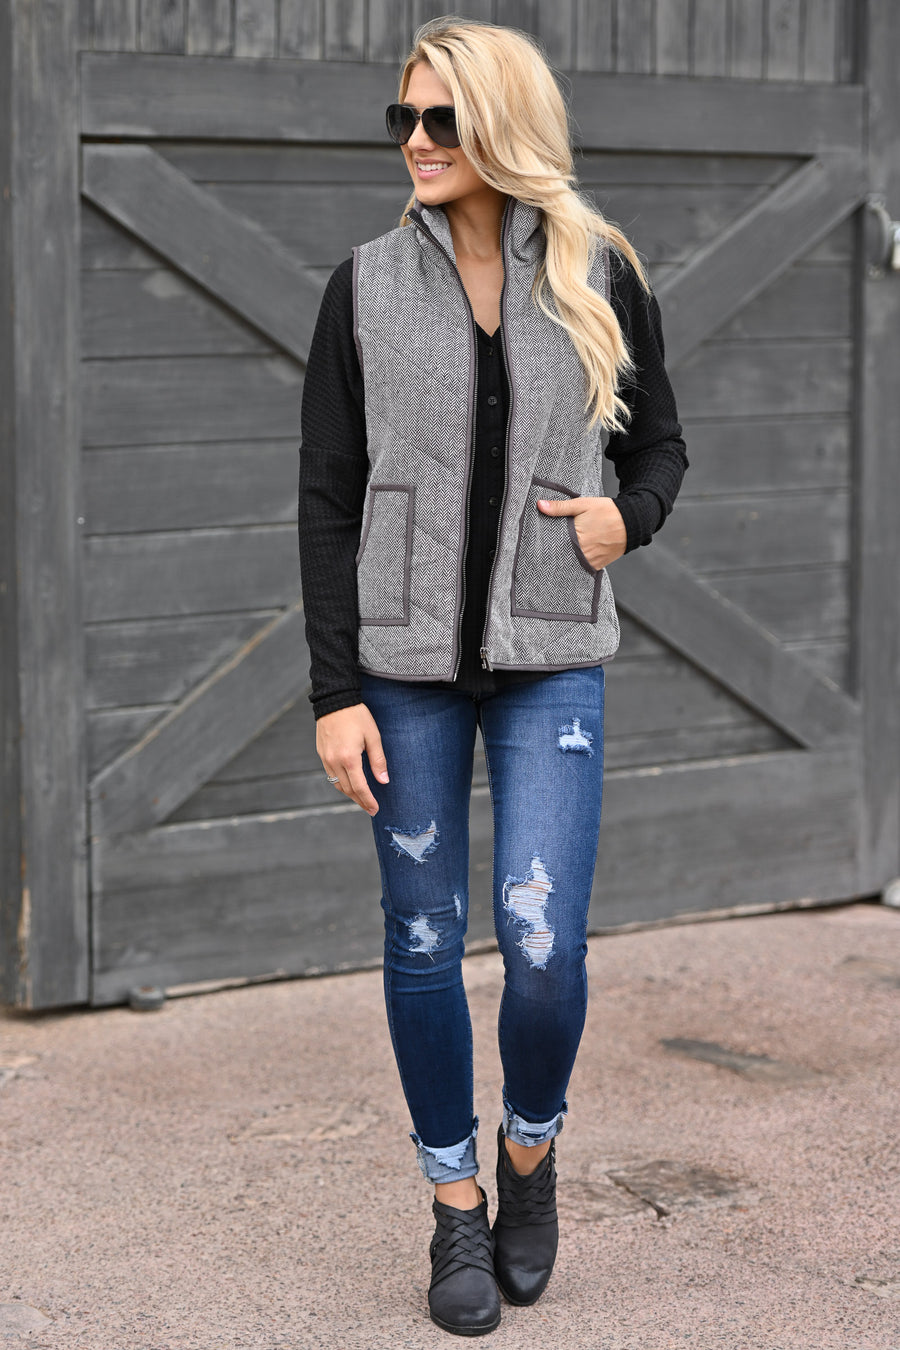 Take A Hike Vest - Charcoal high neck vest with pockets, closet candy boutique 1